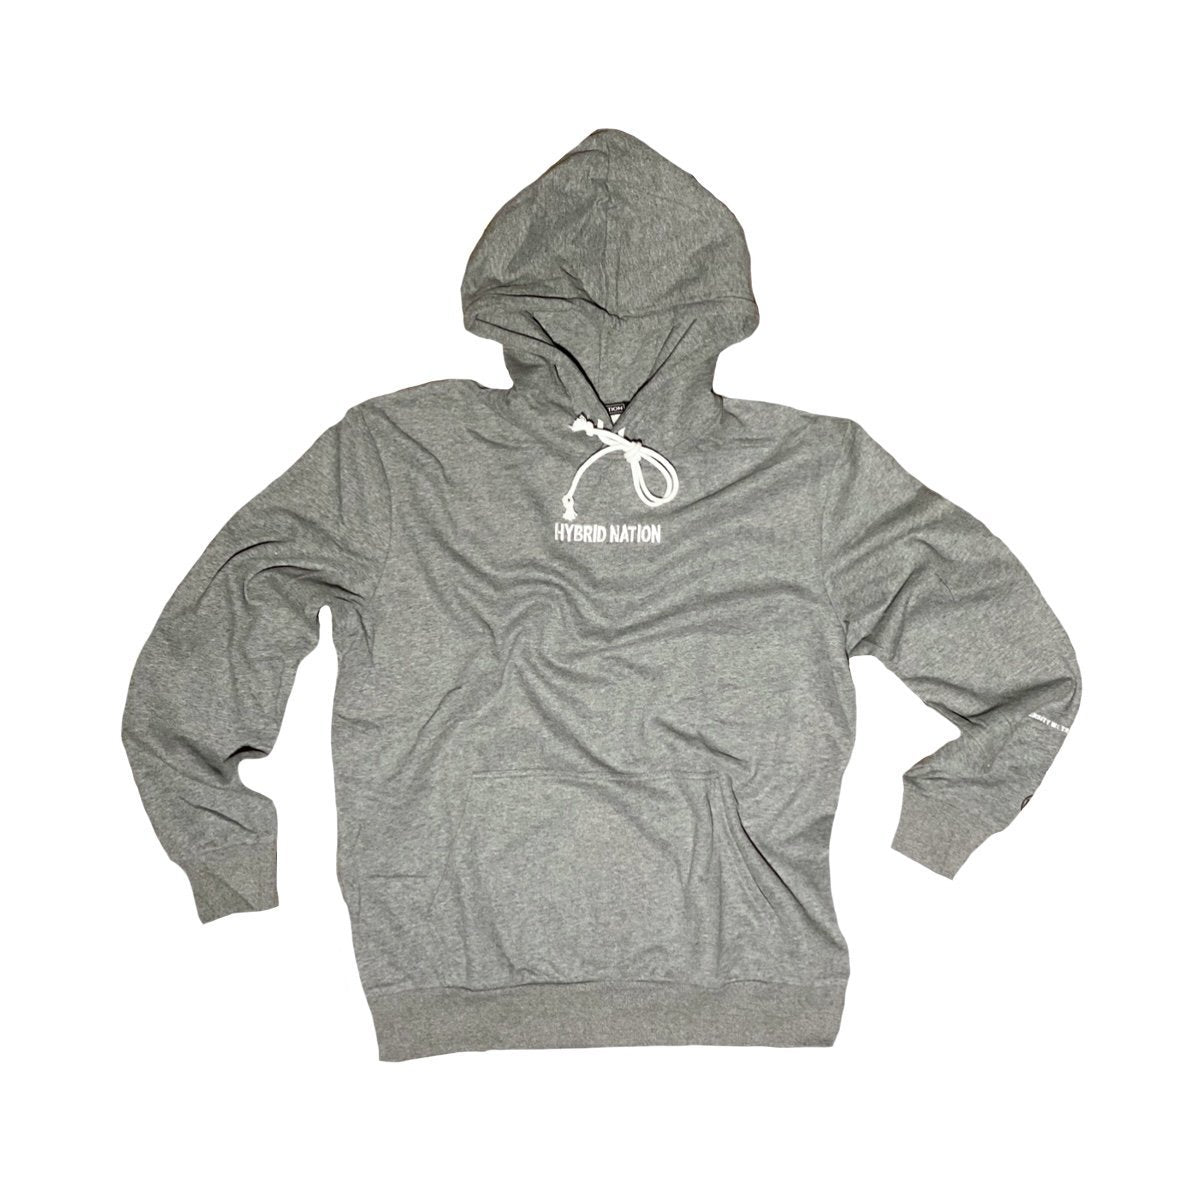 HYBRID NATION BASICS HOODIE (GREY)